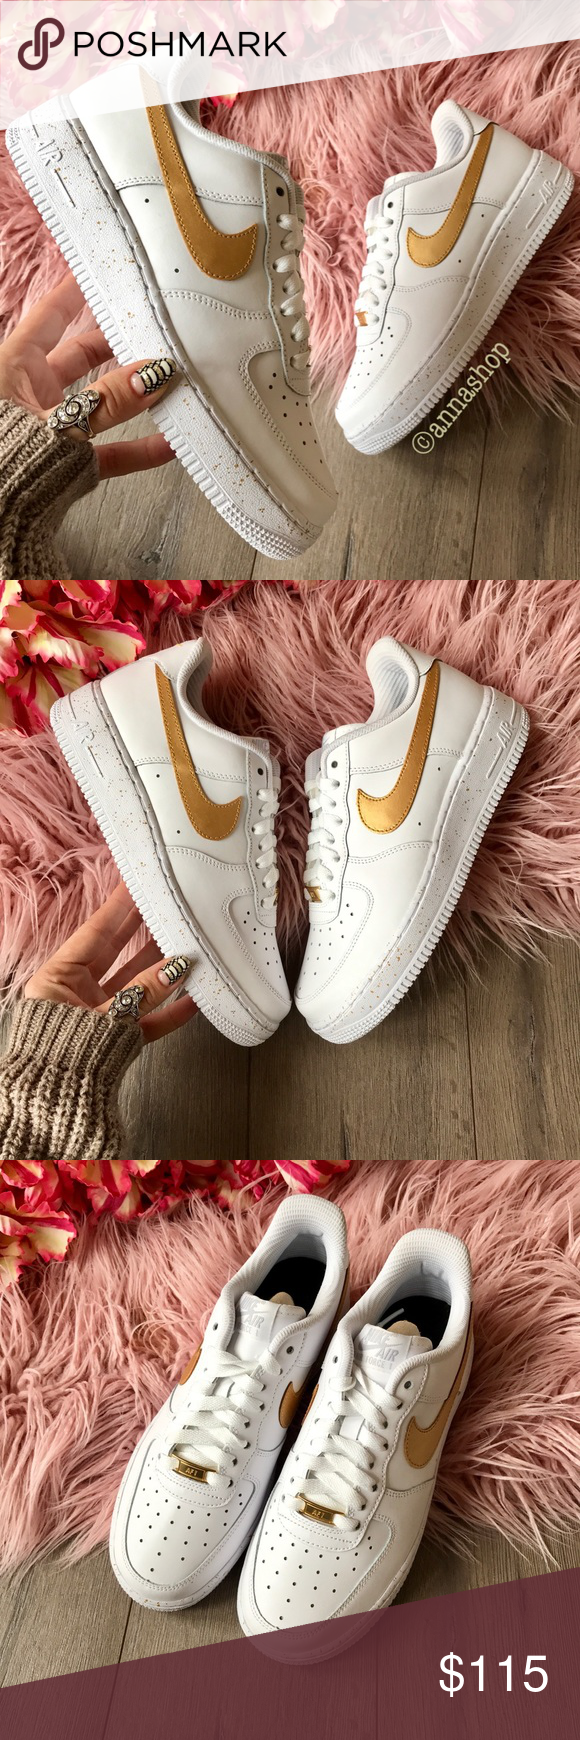 separation shoes f7ee3 e3790 NWT Nike ID Air Force 1 gold Oreo Brand new no box price is firm!